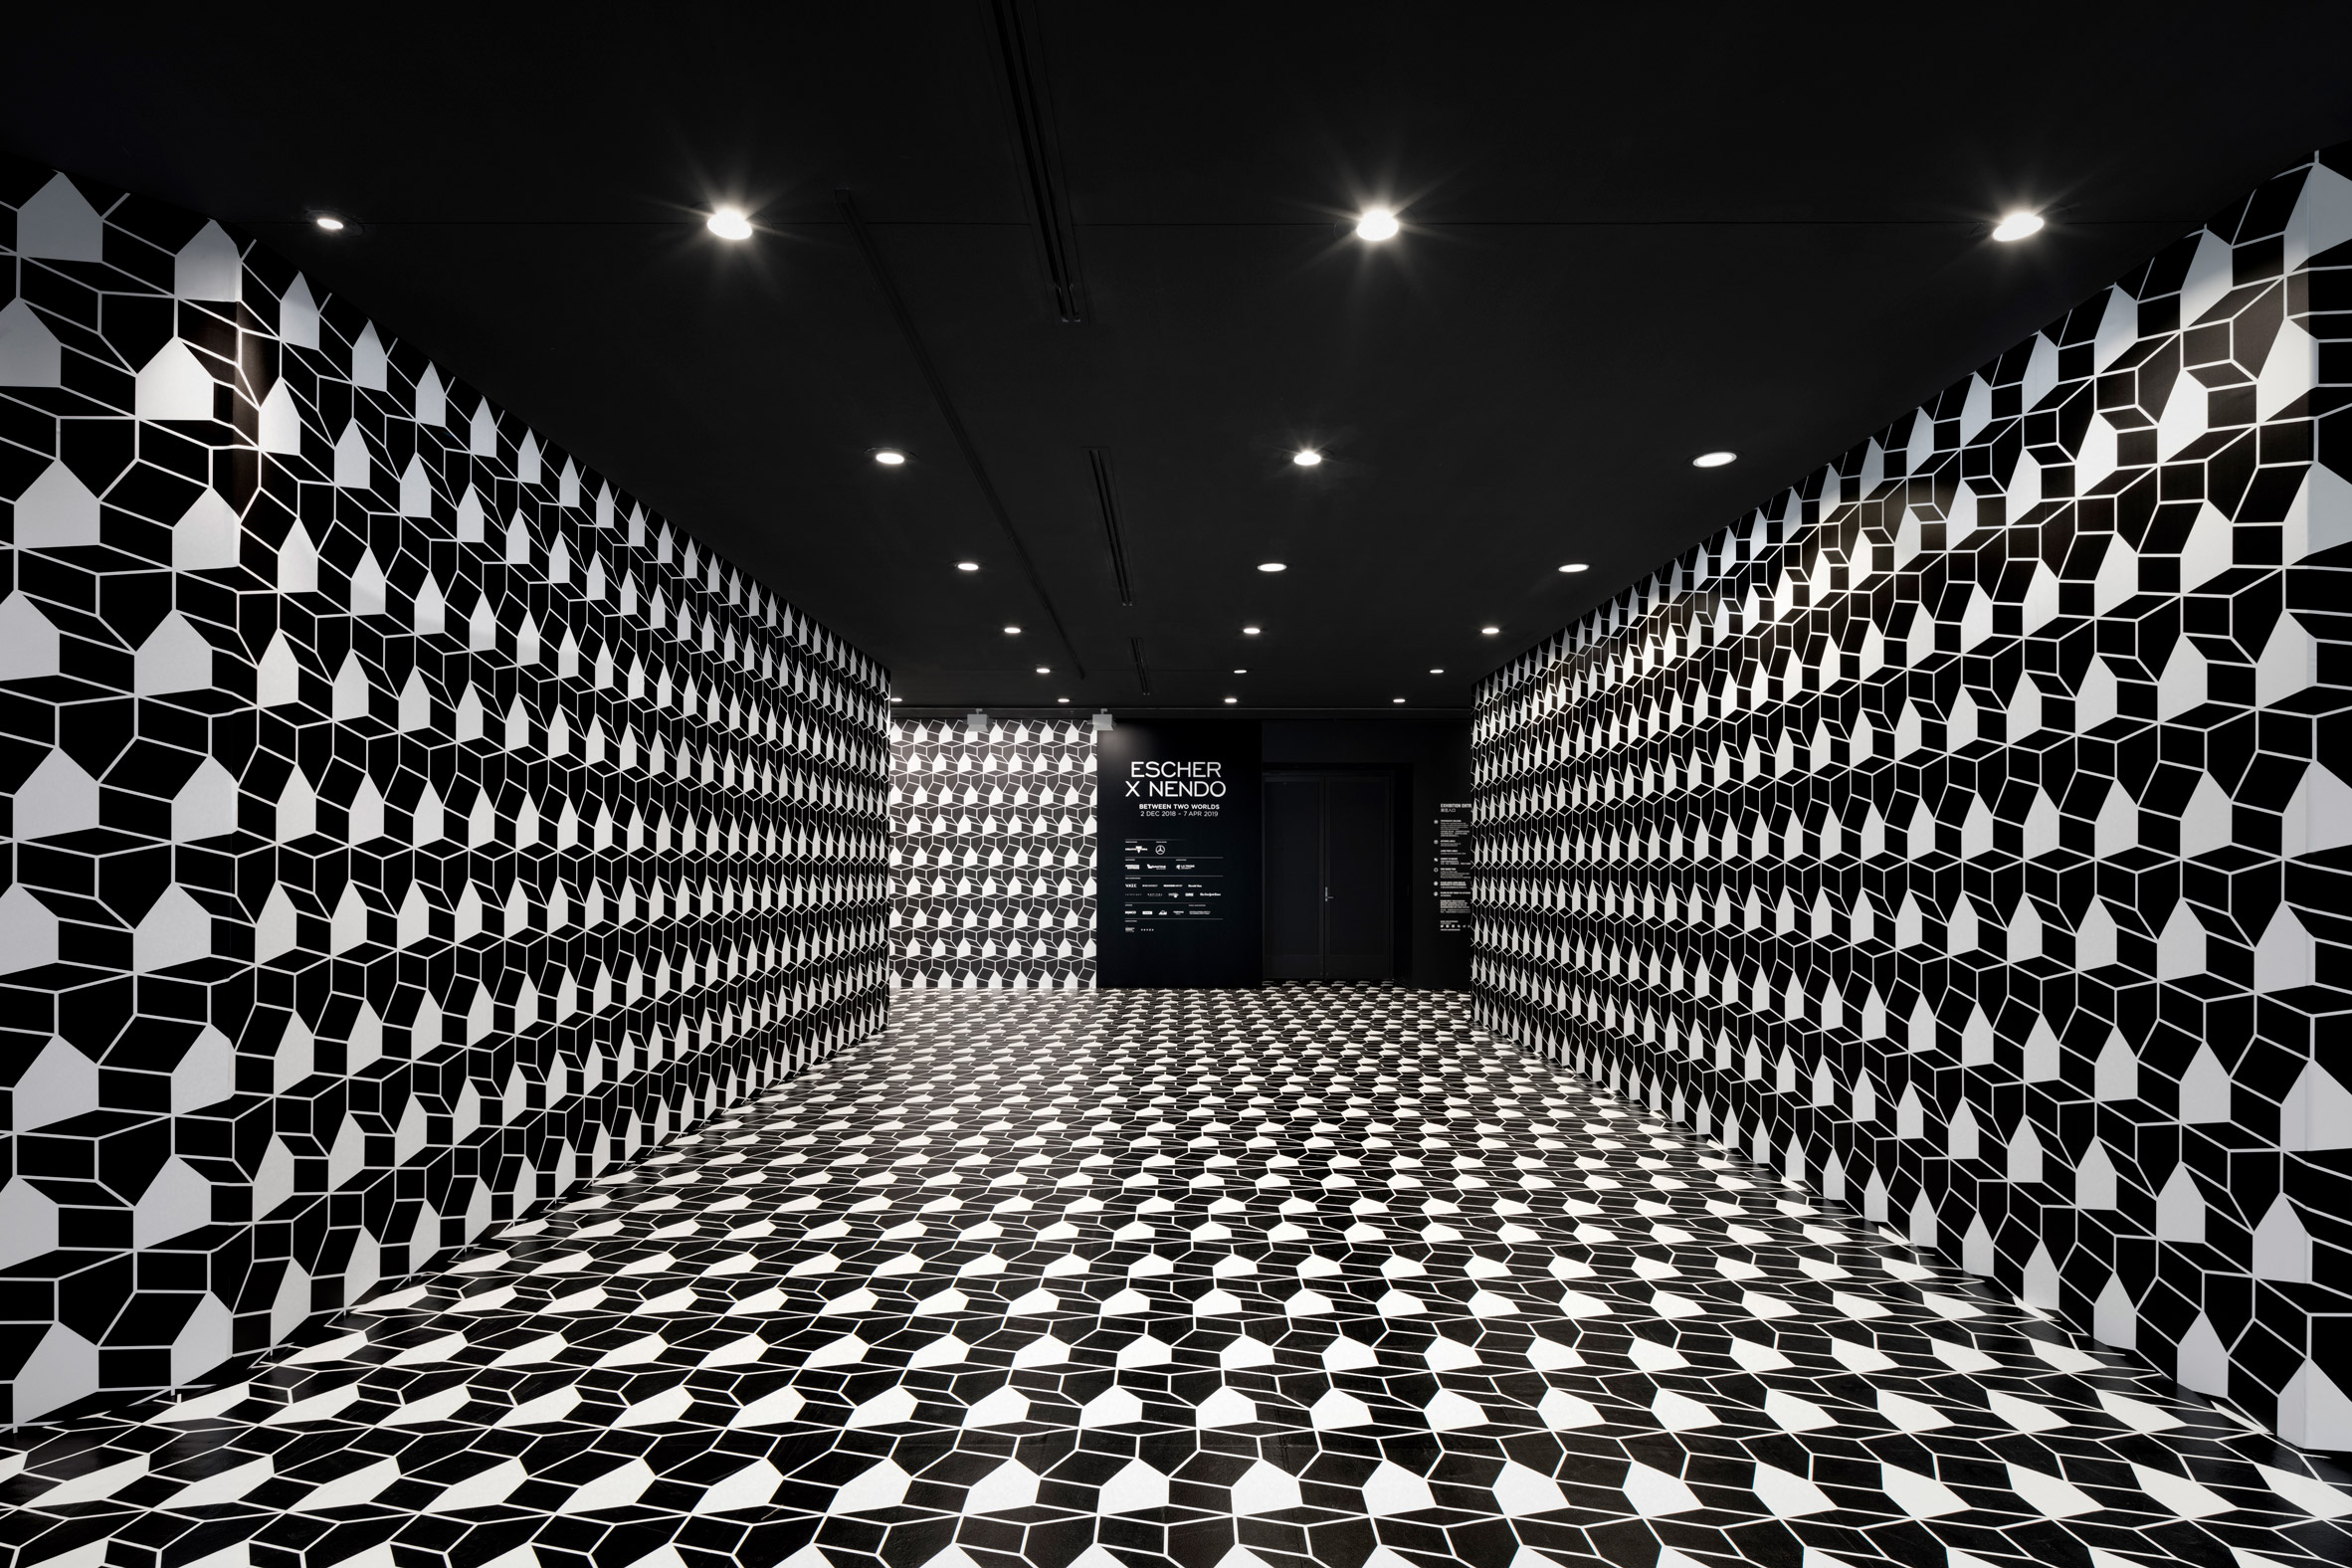 Escher-Nendo-exhibition_dezeen_2364_col_3.jpg